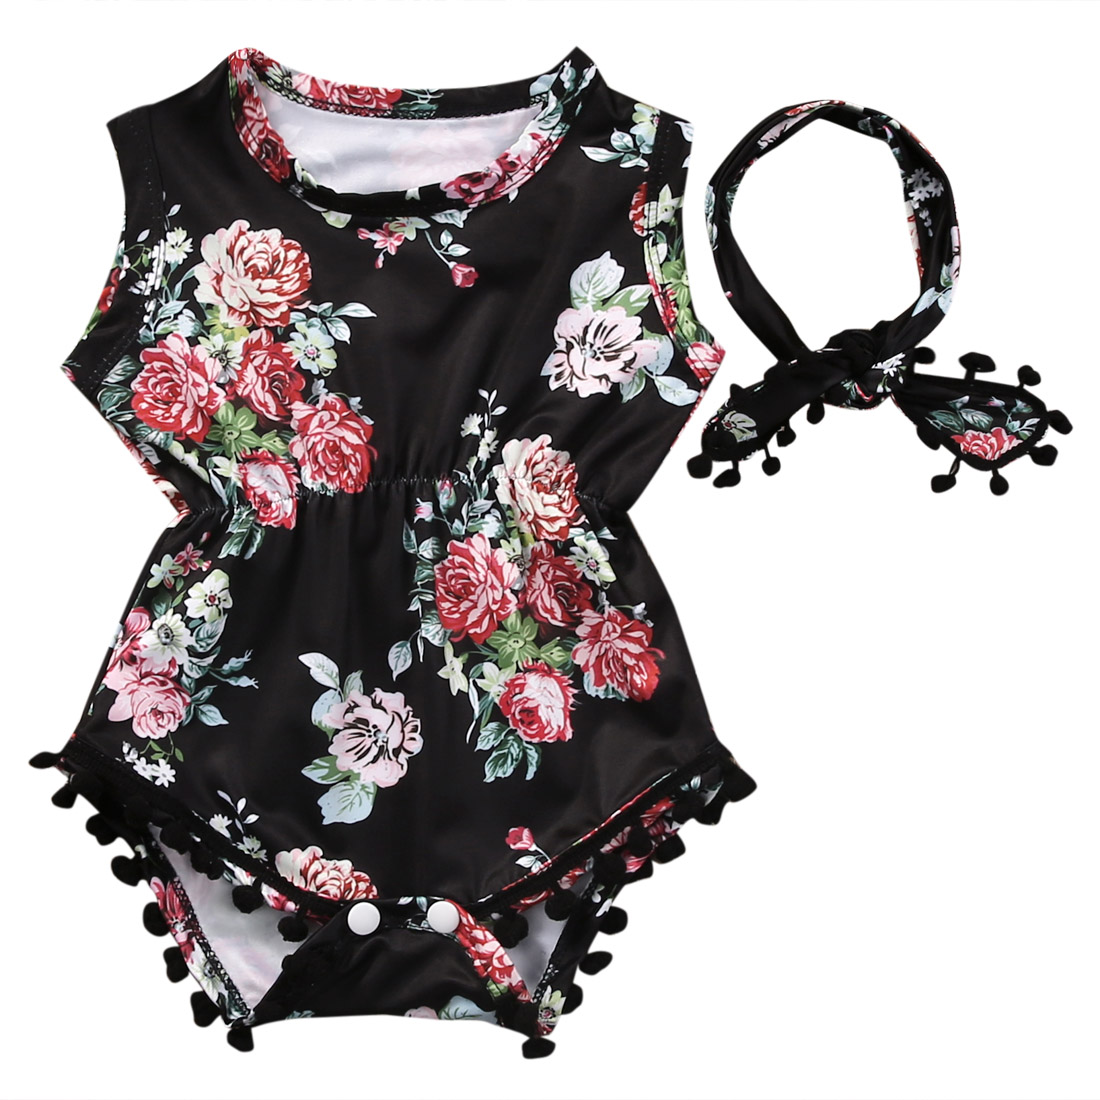 Summer Baby Girl Romper 2017 Summer Floral Tassel Bodysuit Jumpsuit +Headband 2PCS Outfit Sunsuit Tracksuit Clothing Set